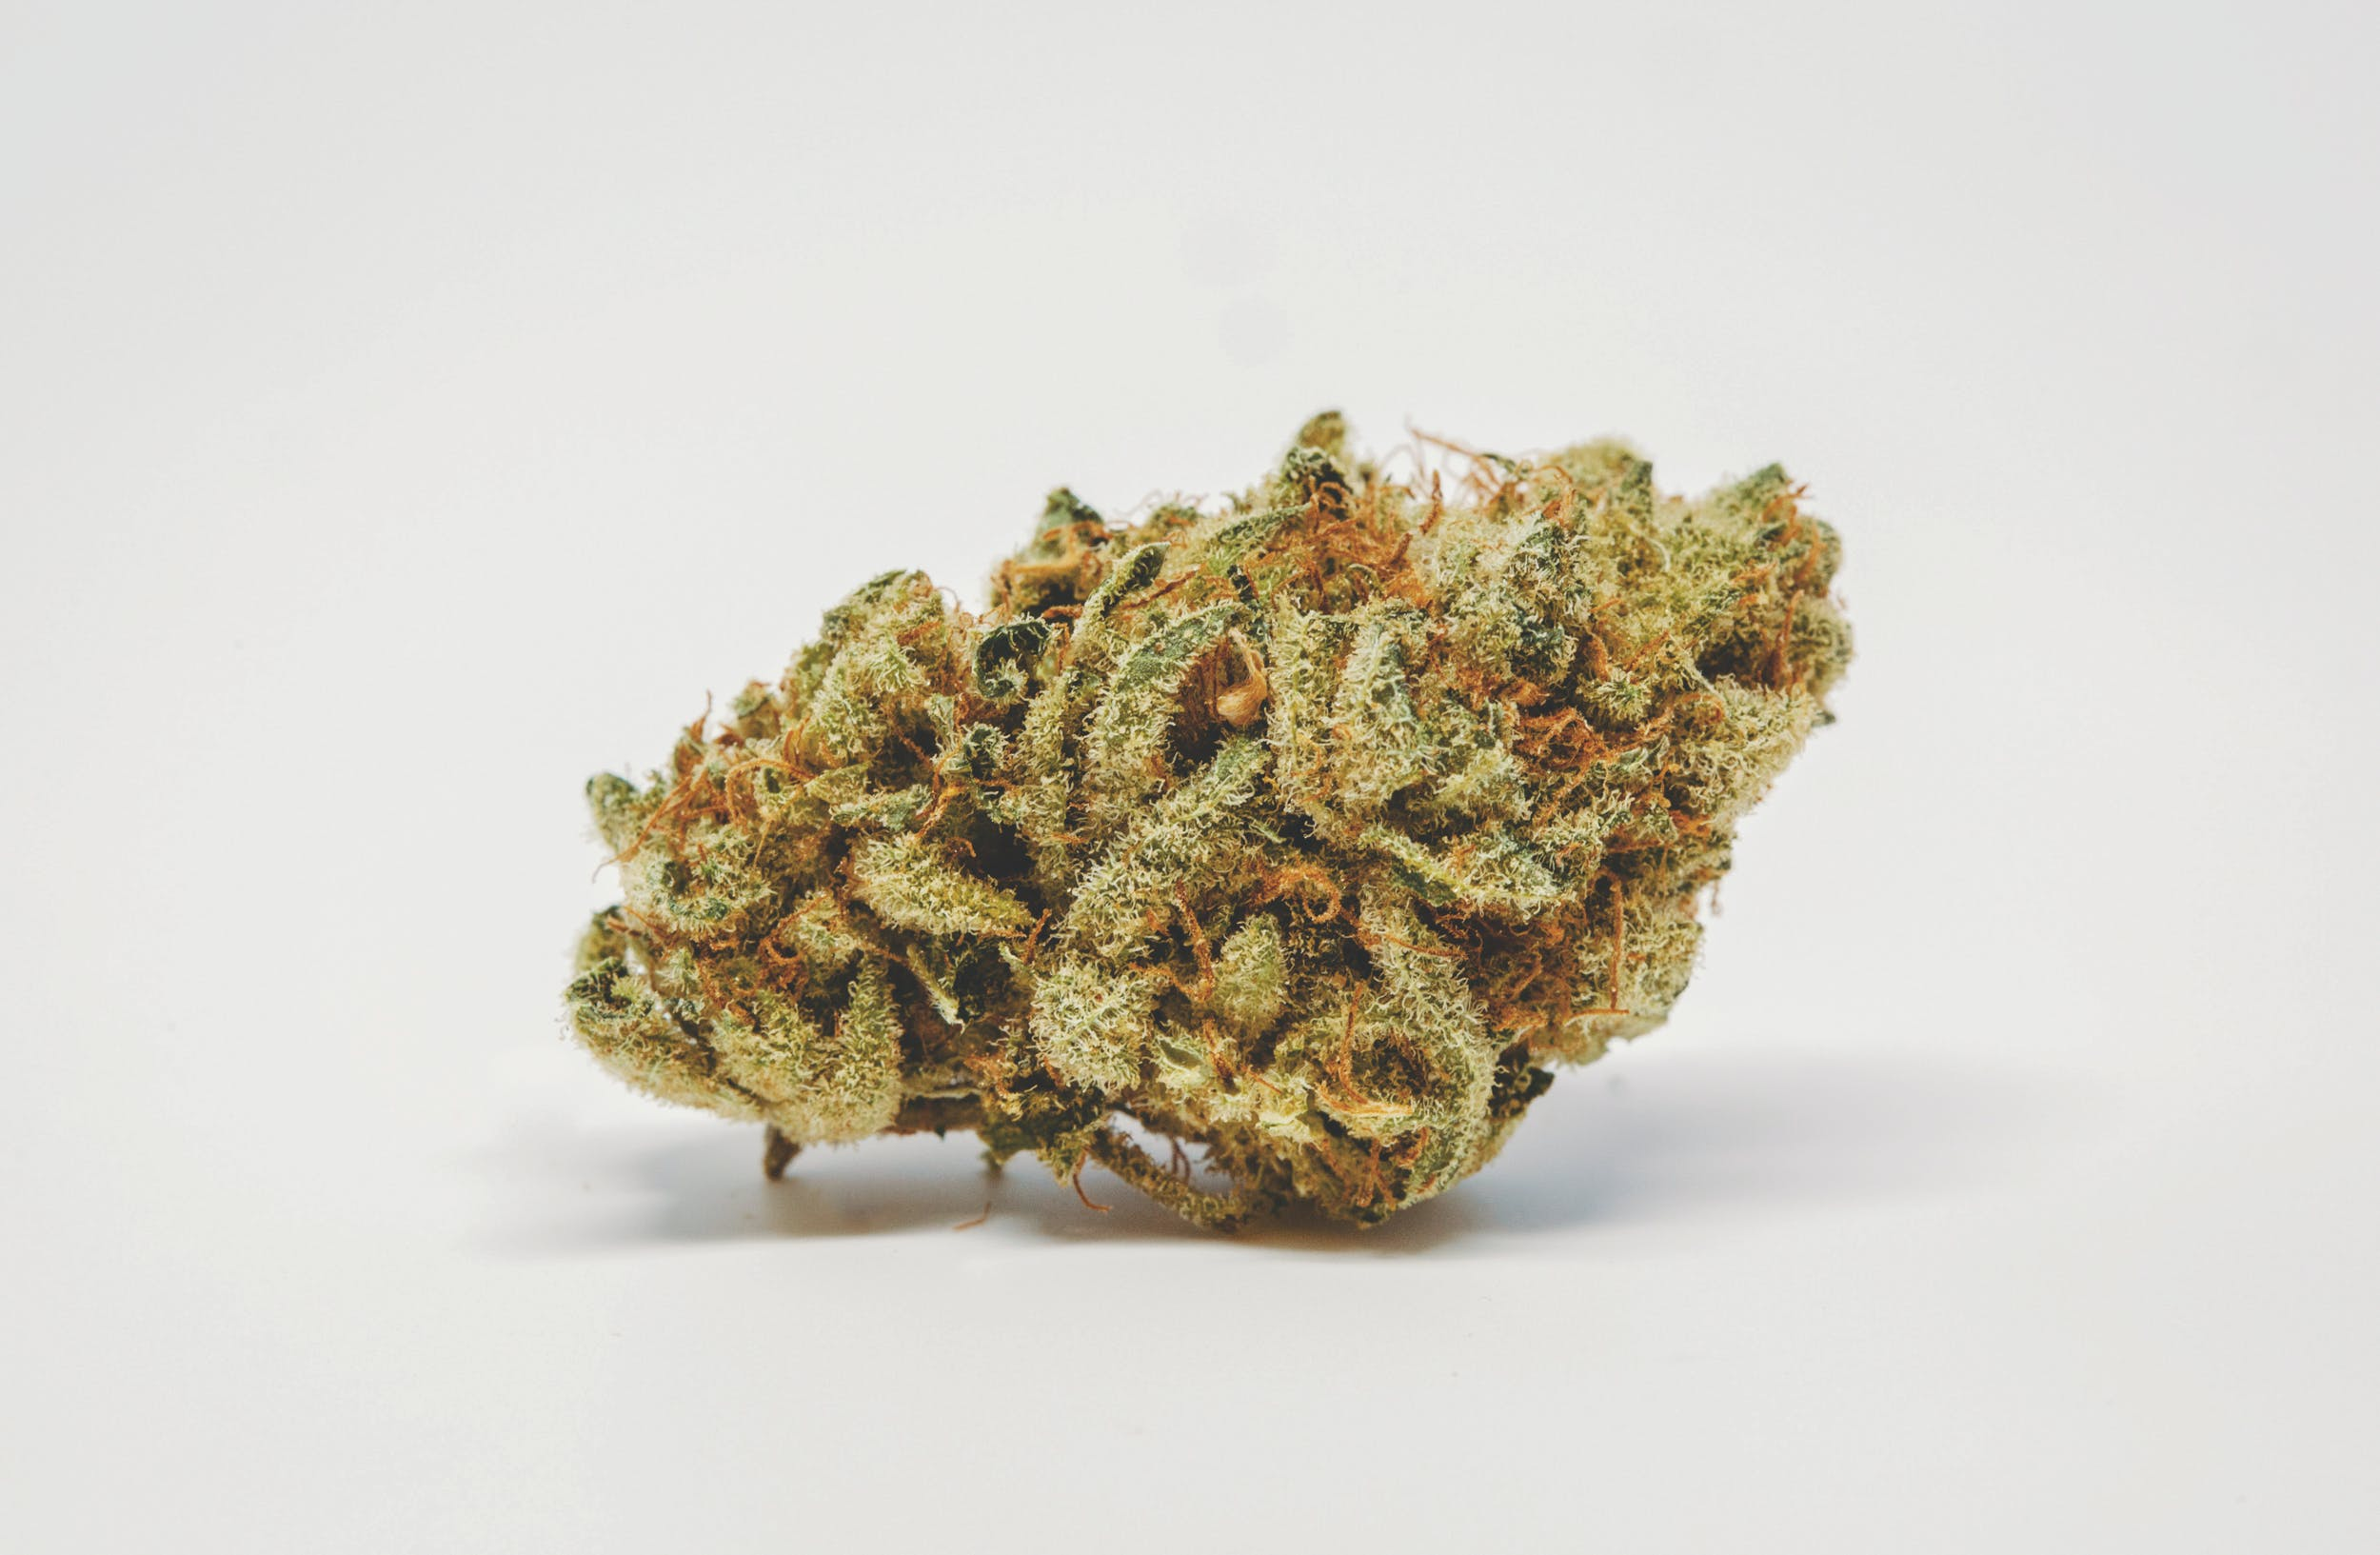 Best Kush Strains 2 These are the Best Kush Strains on the Planet